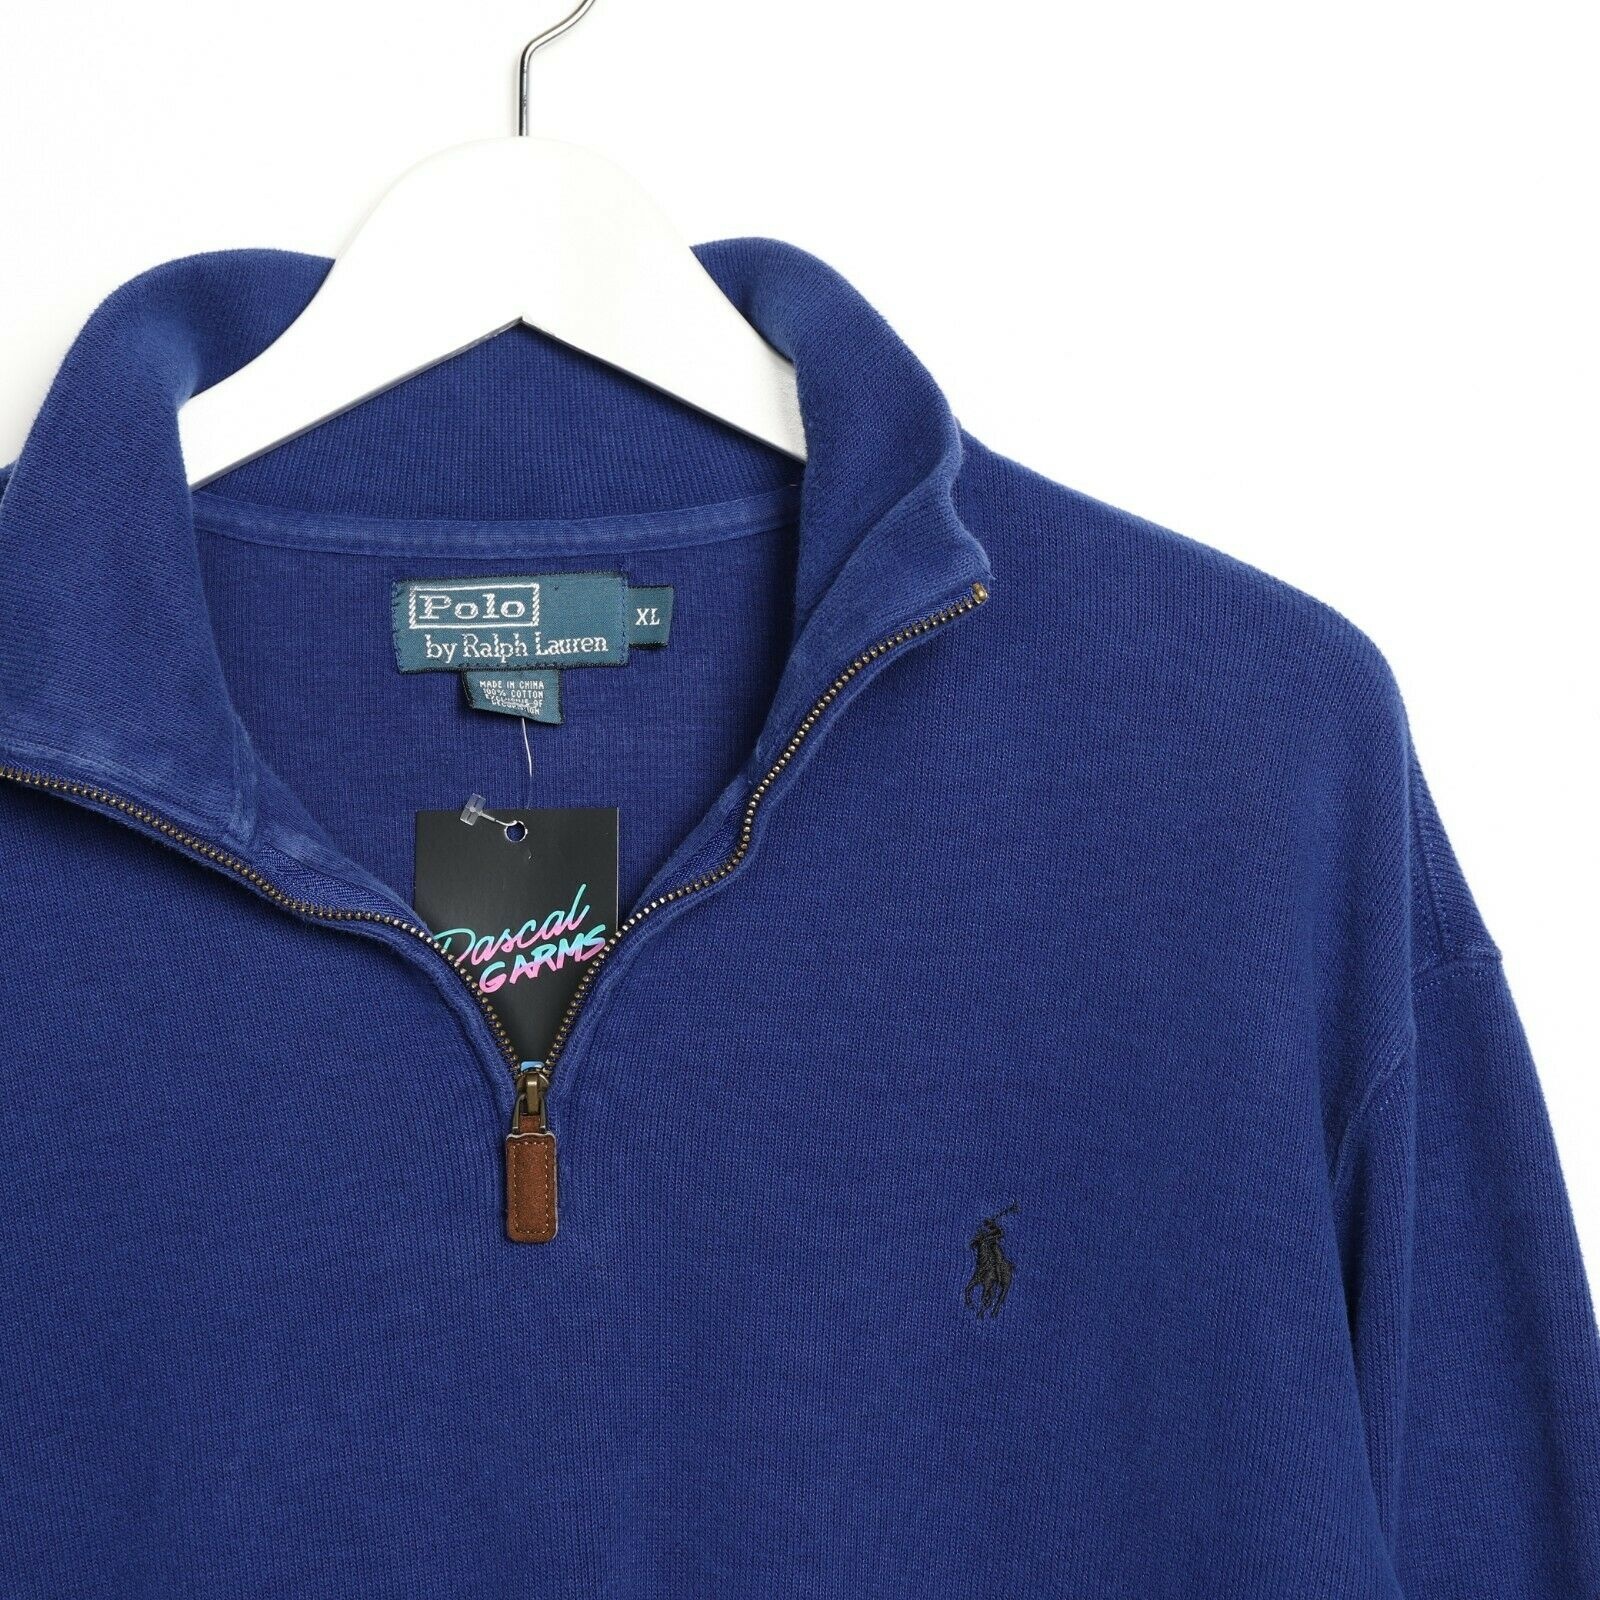 Vintage RALPH LAUREN Small Logo 1/4 Zip Sweatshirt Jumper Blue | XL